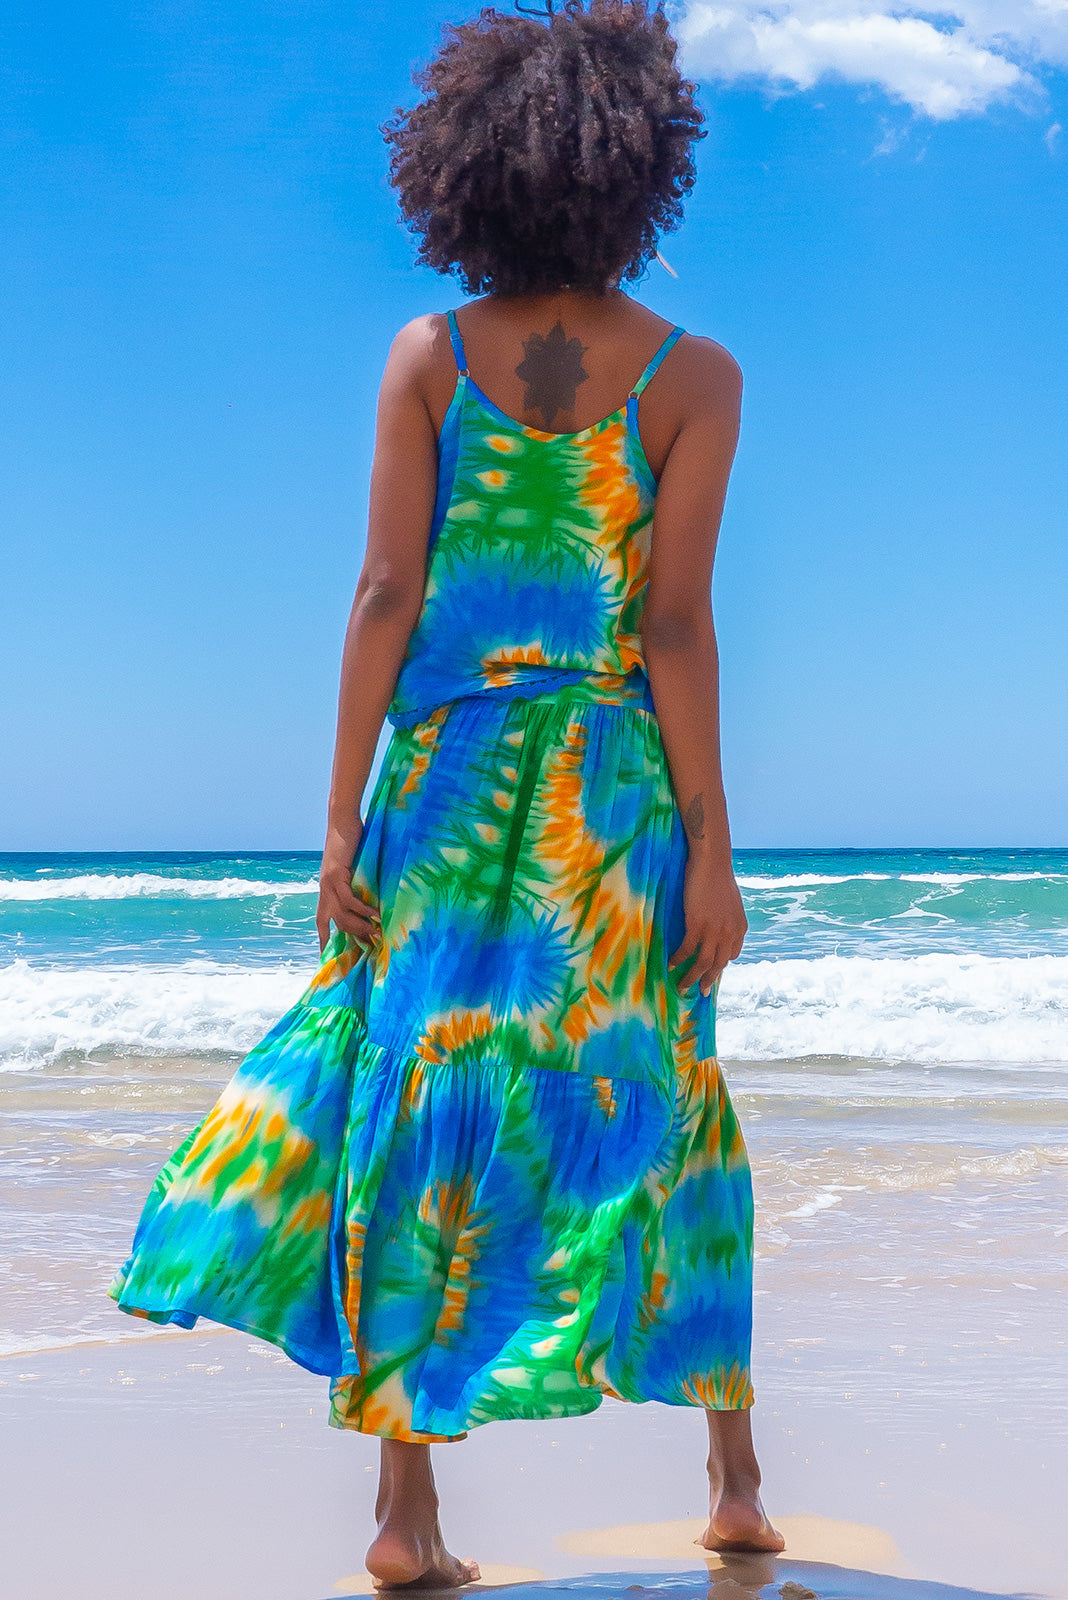 The valencia Ocean Tie Dye Maxi Skirt is a beachy and comfortable slip-on style skirt featuring elasticated waistband with decorative tie, tiered for fullness, side pockets and 100% rayon in tie dye print of blue, green, and yellow.